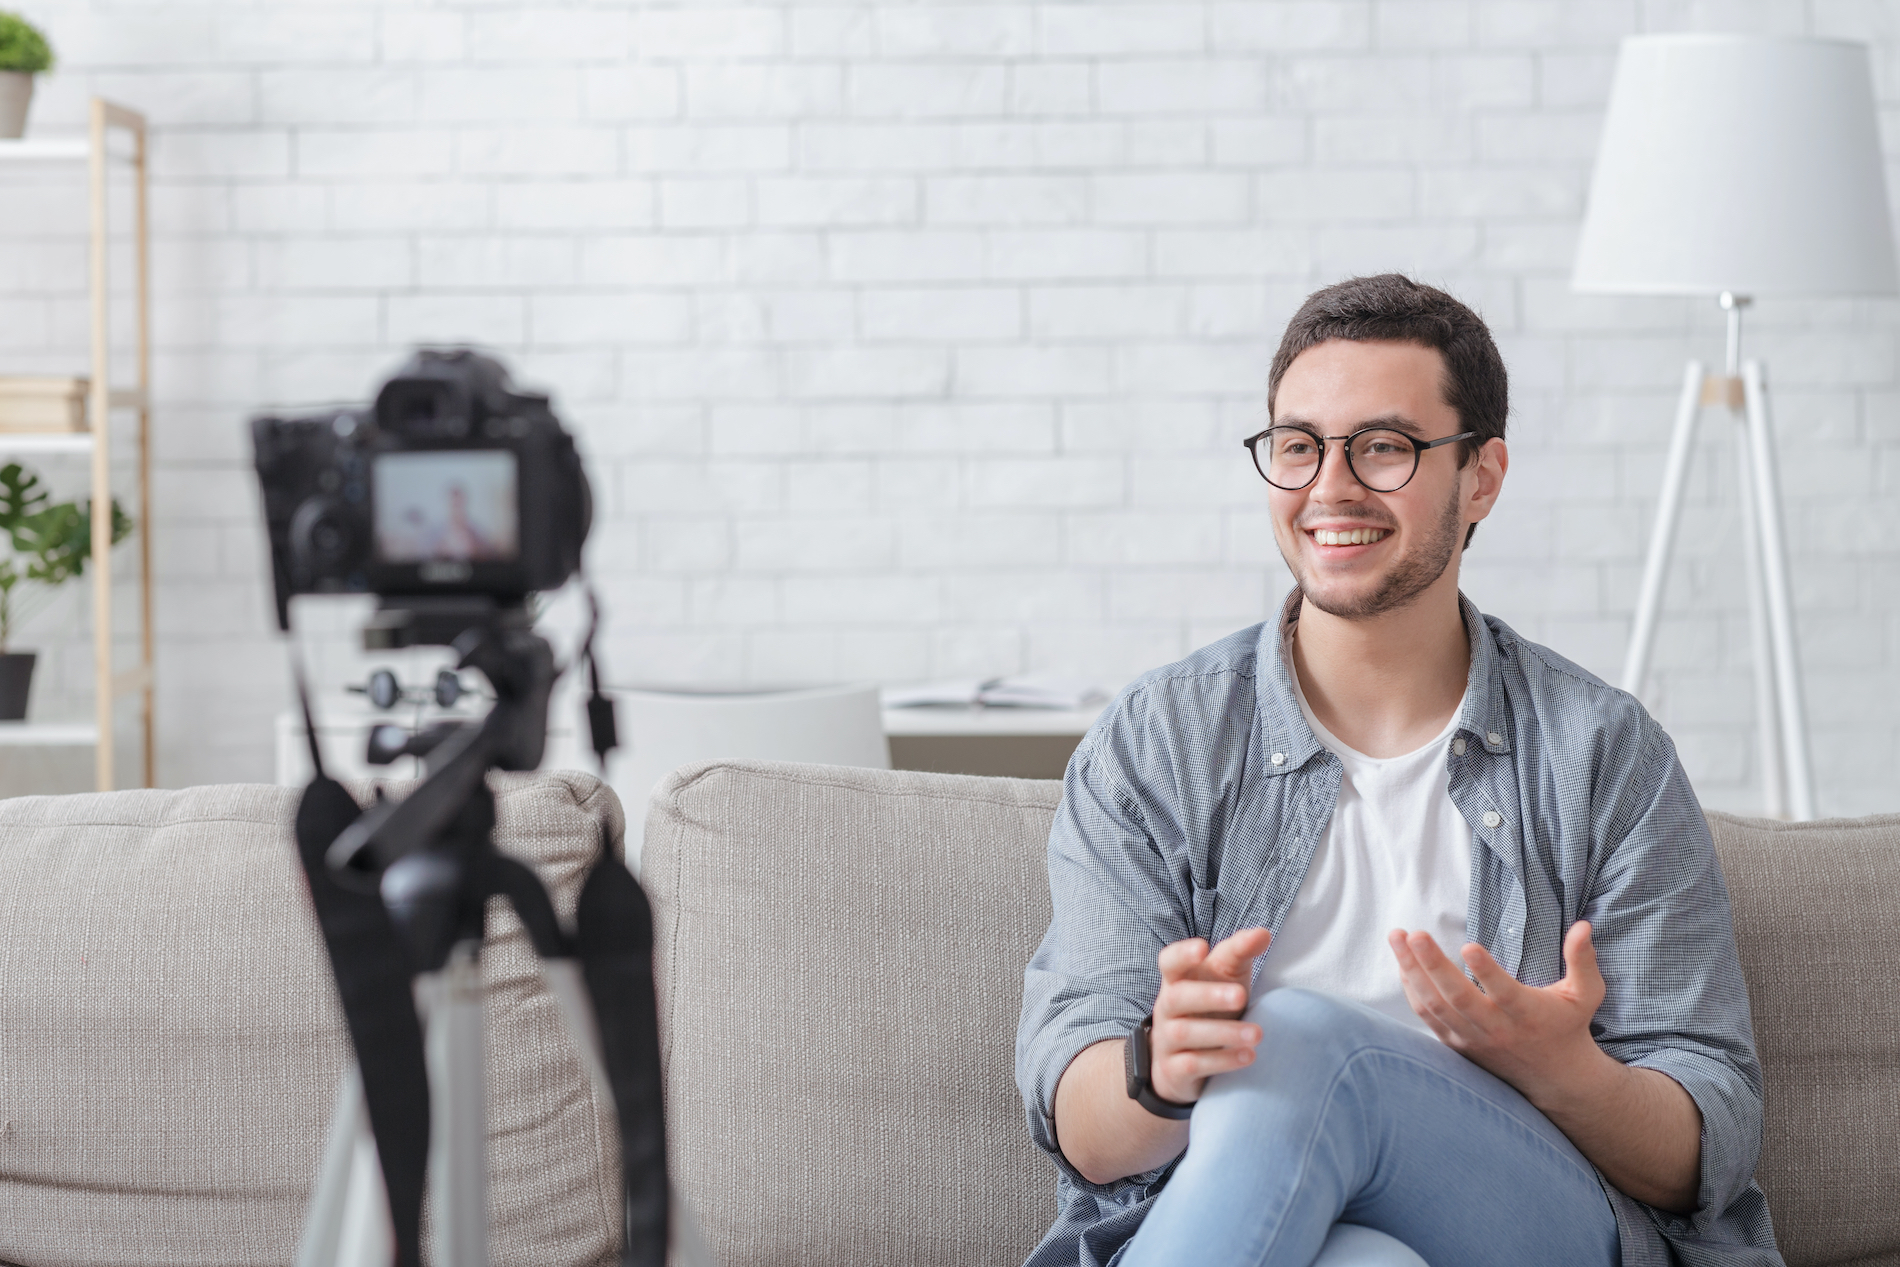 4 ways video improves the customer experience